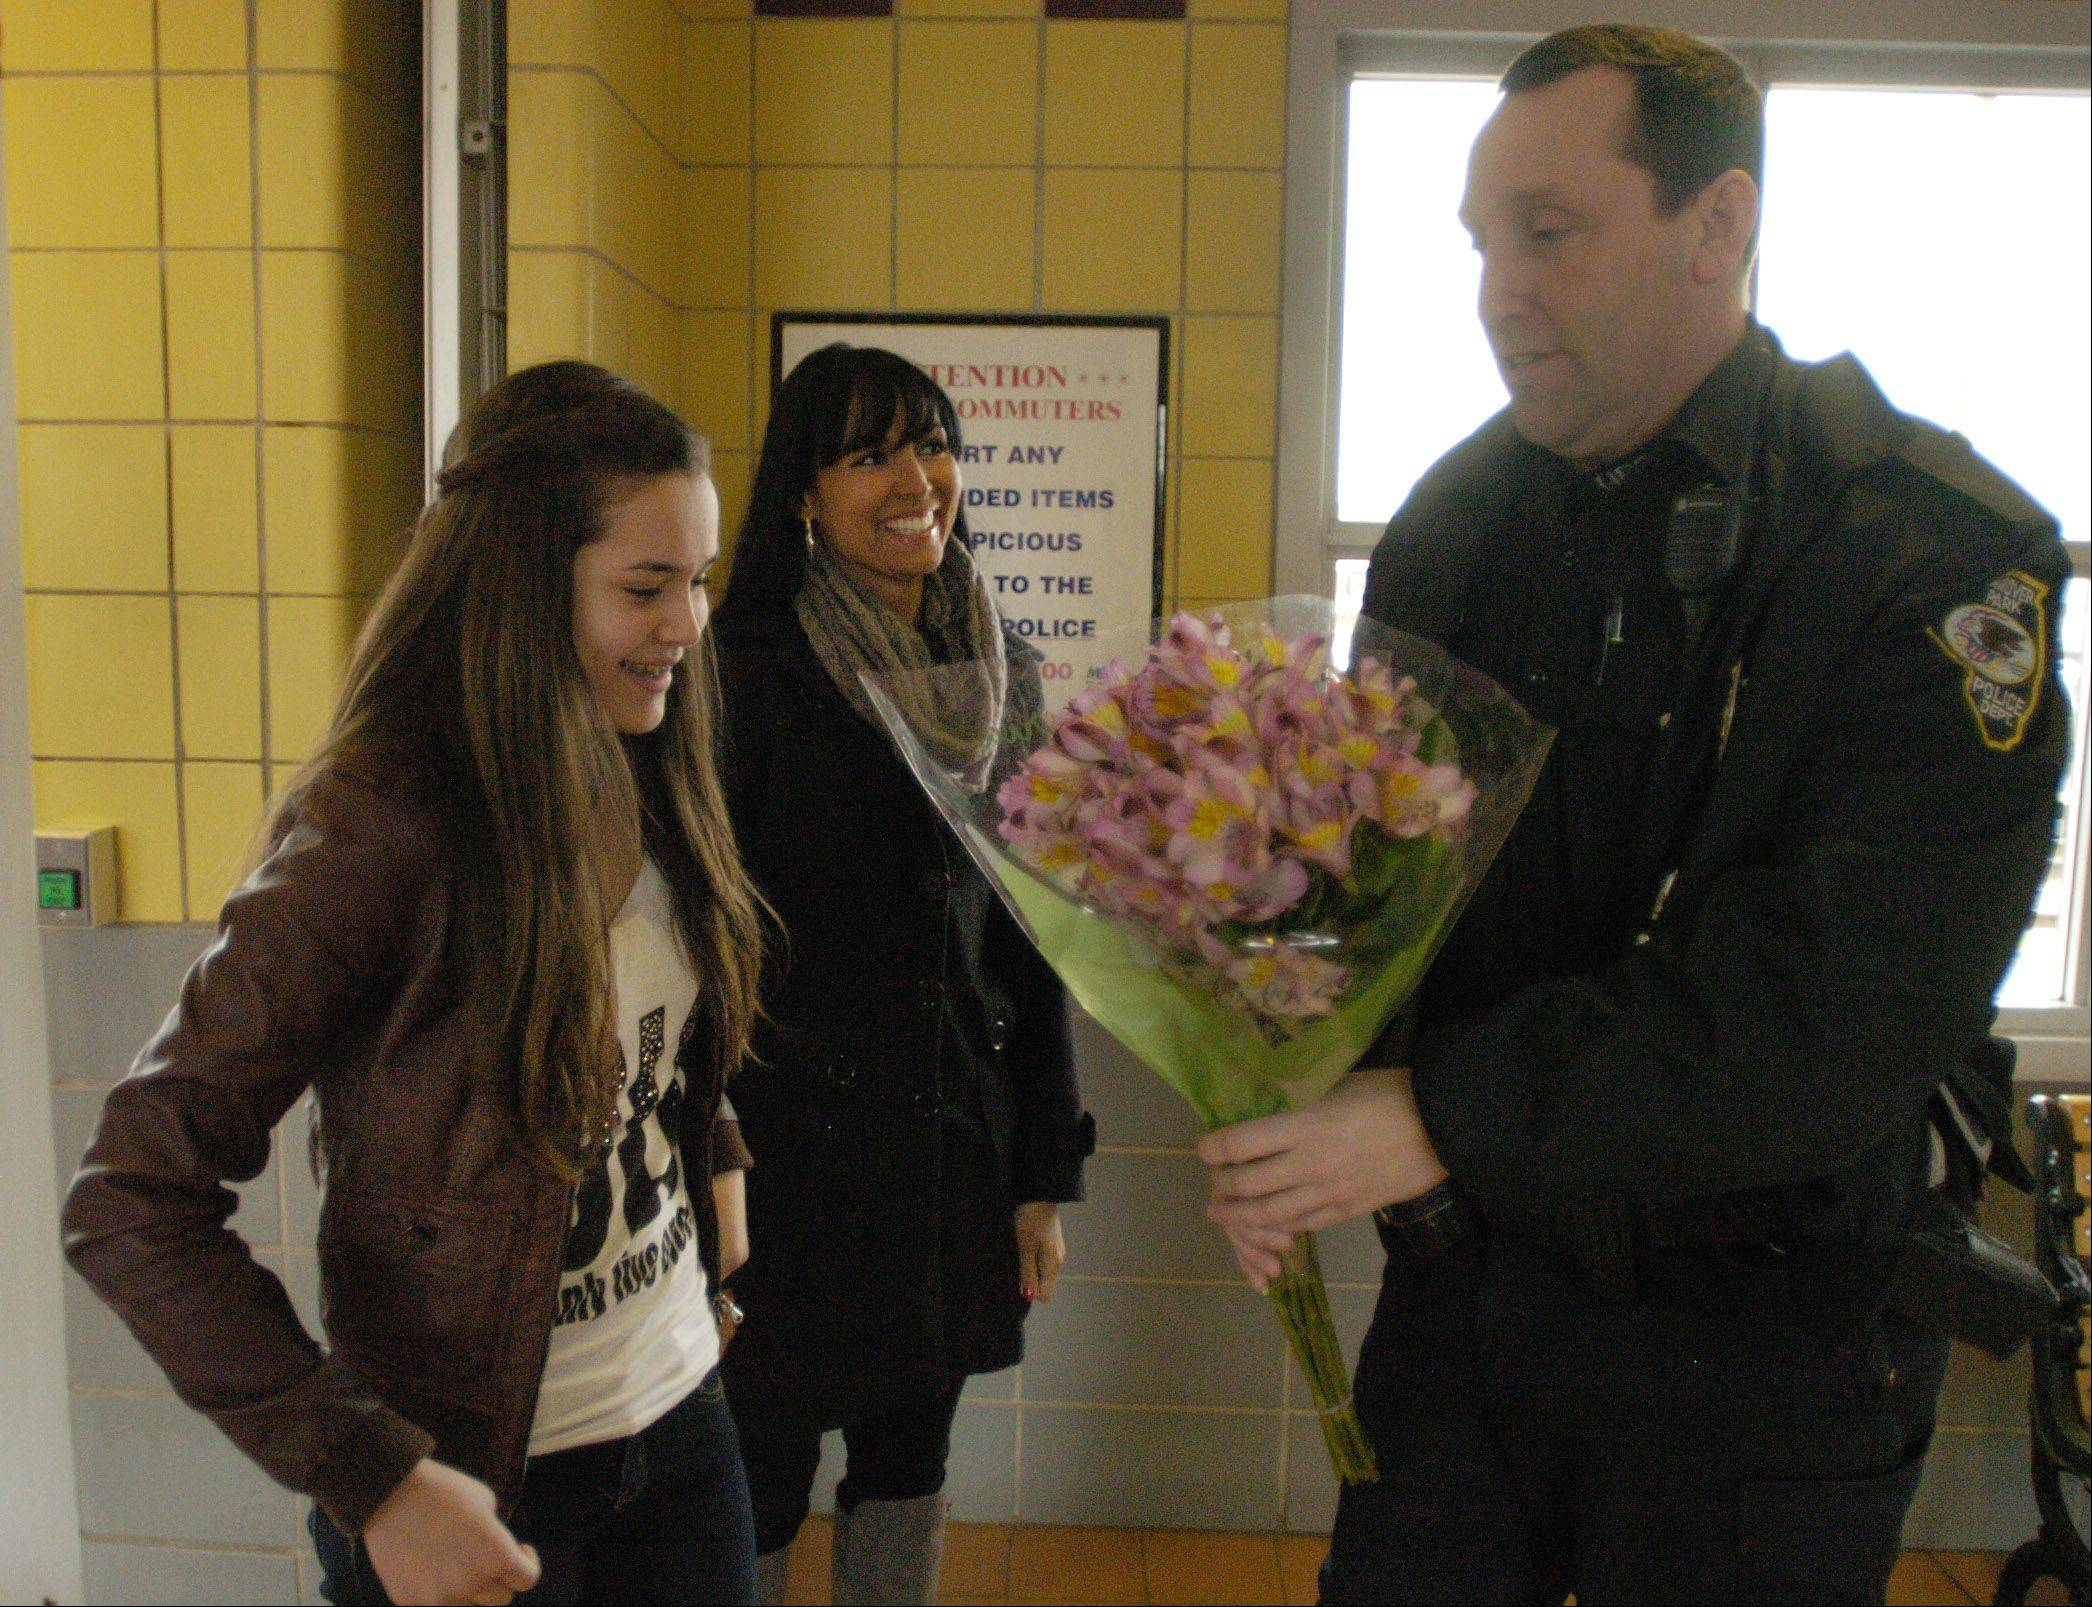 Hanover Park police Officer George Sullivan presents flowers to Brianna Elizondo of Carol Stream for her birthday. Sullivan helped deliver Brianna 13 years ago at the Metra station parking lot when labor went a bit too quickly for mother Monica Bakos.